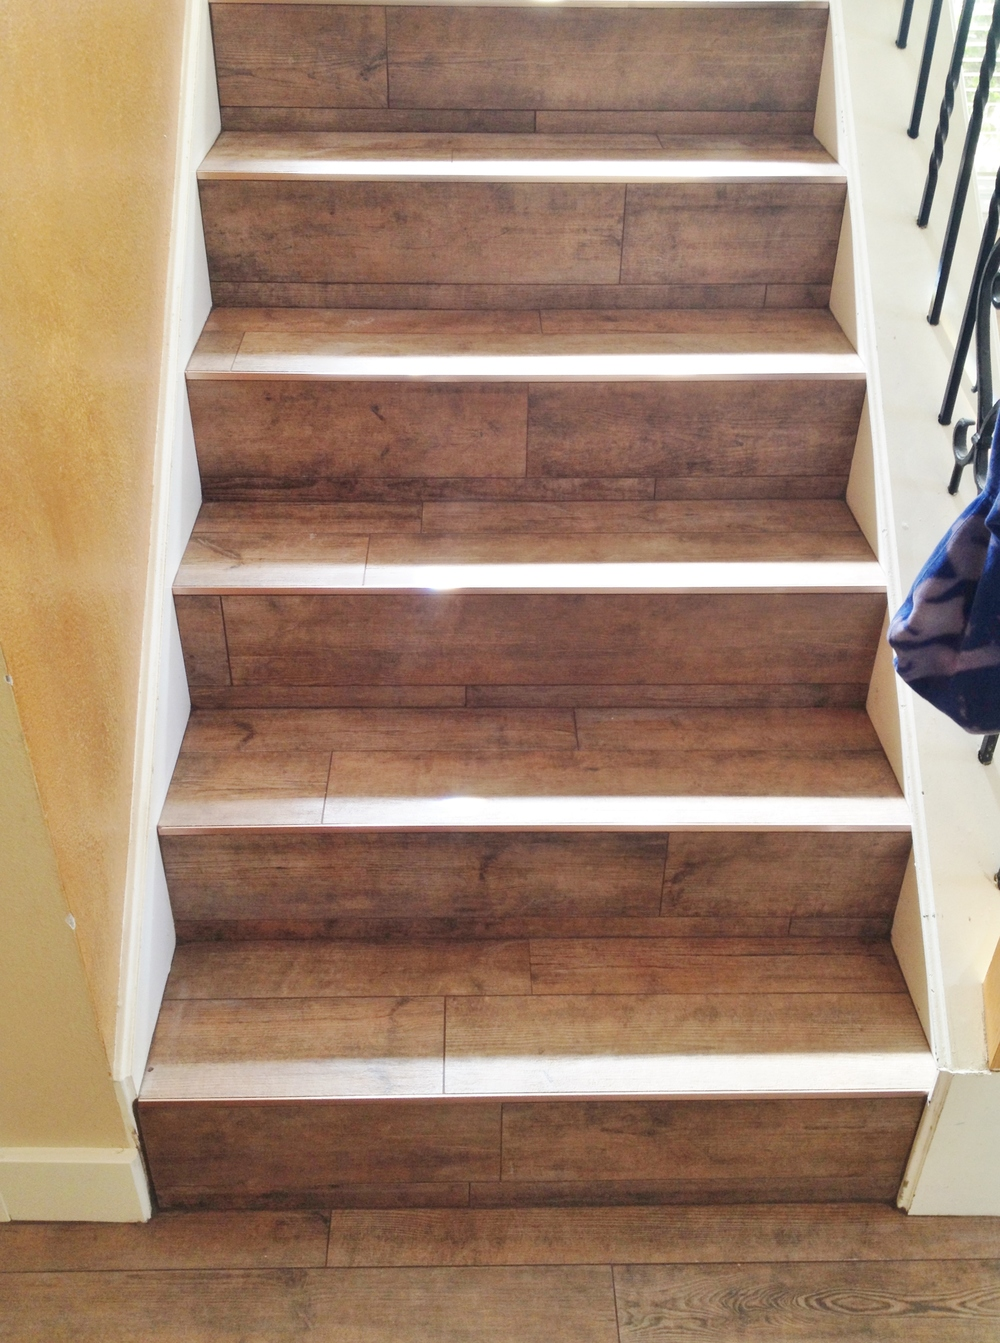 WOOD FLOORING ON STAIRS.jpg